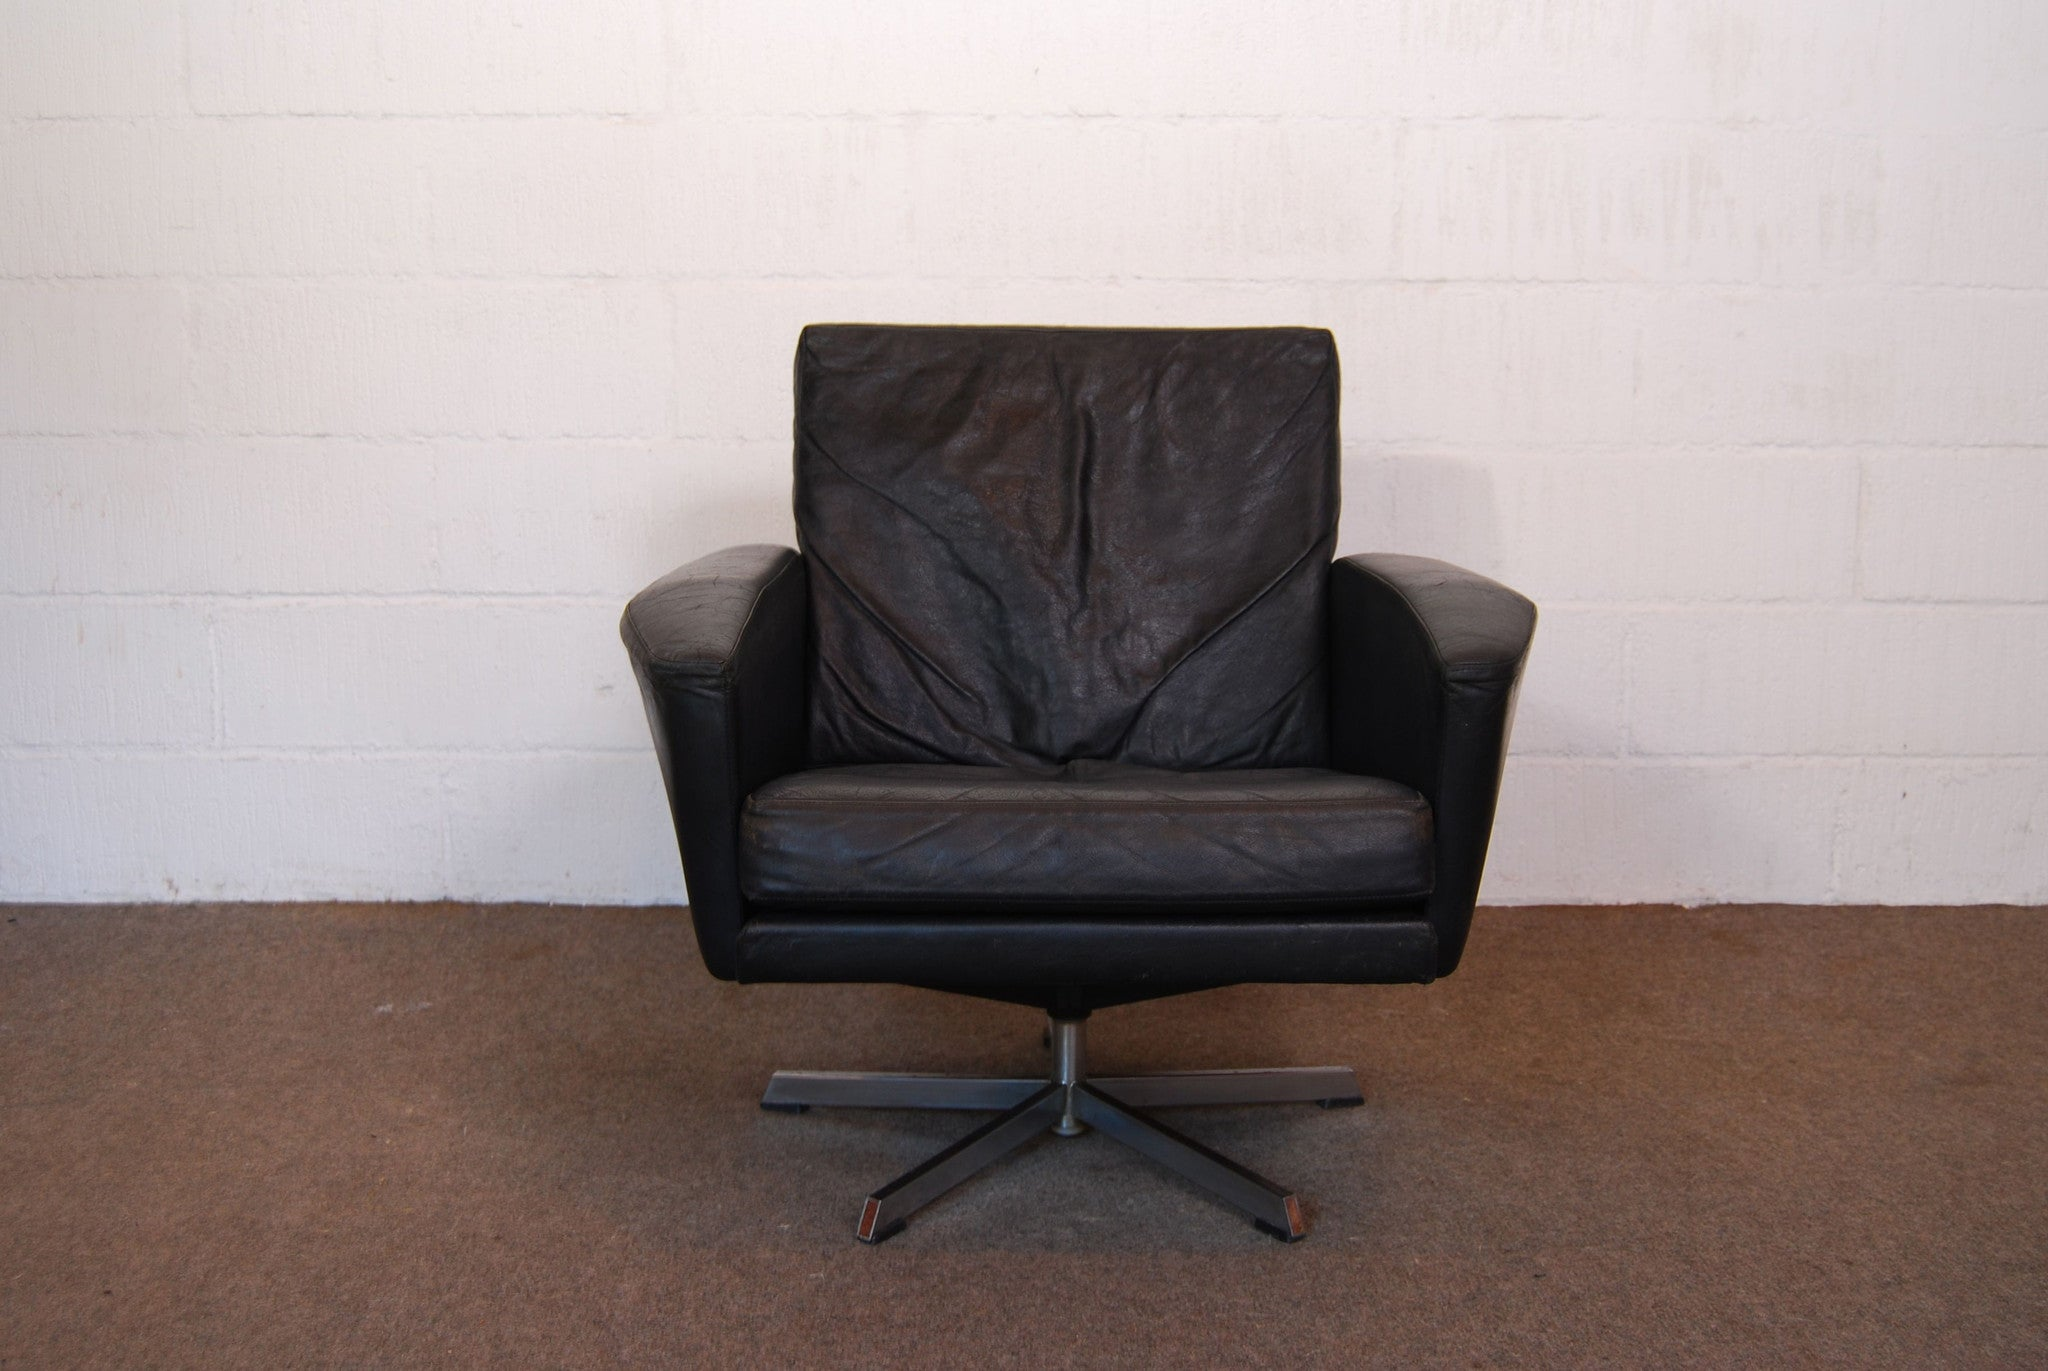 Chase & Sorensen Black leather low back lounger on swivel base